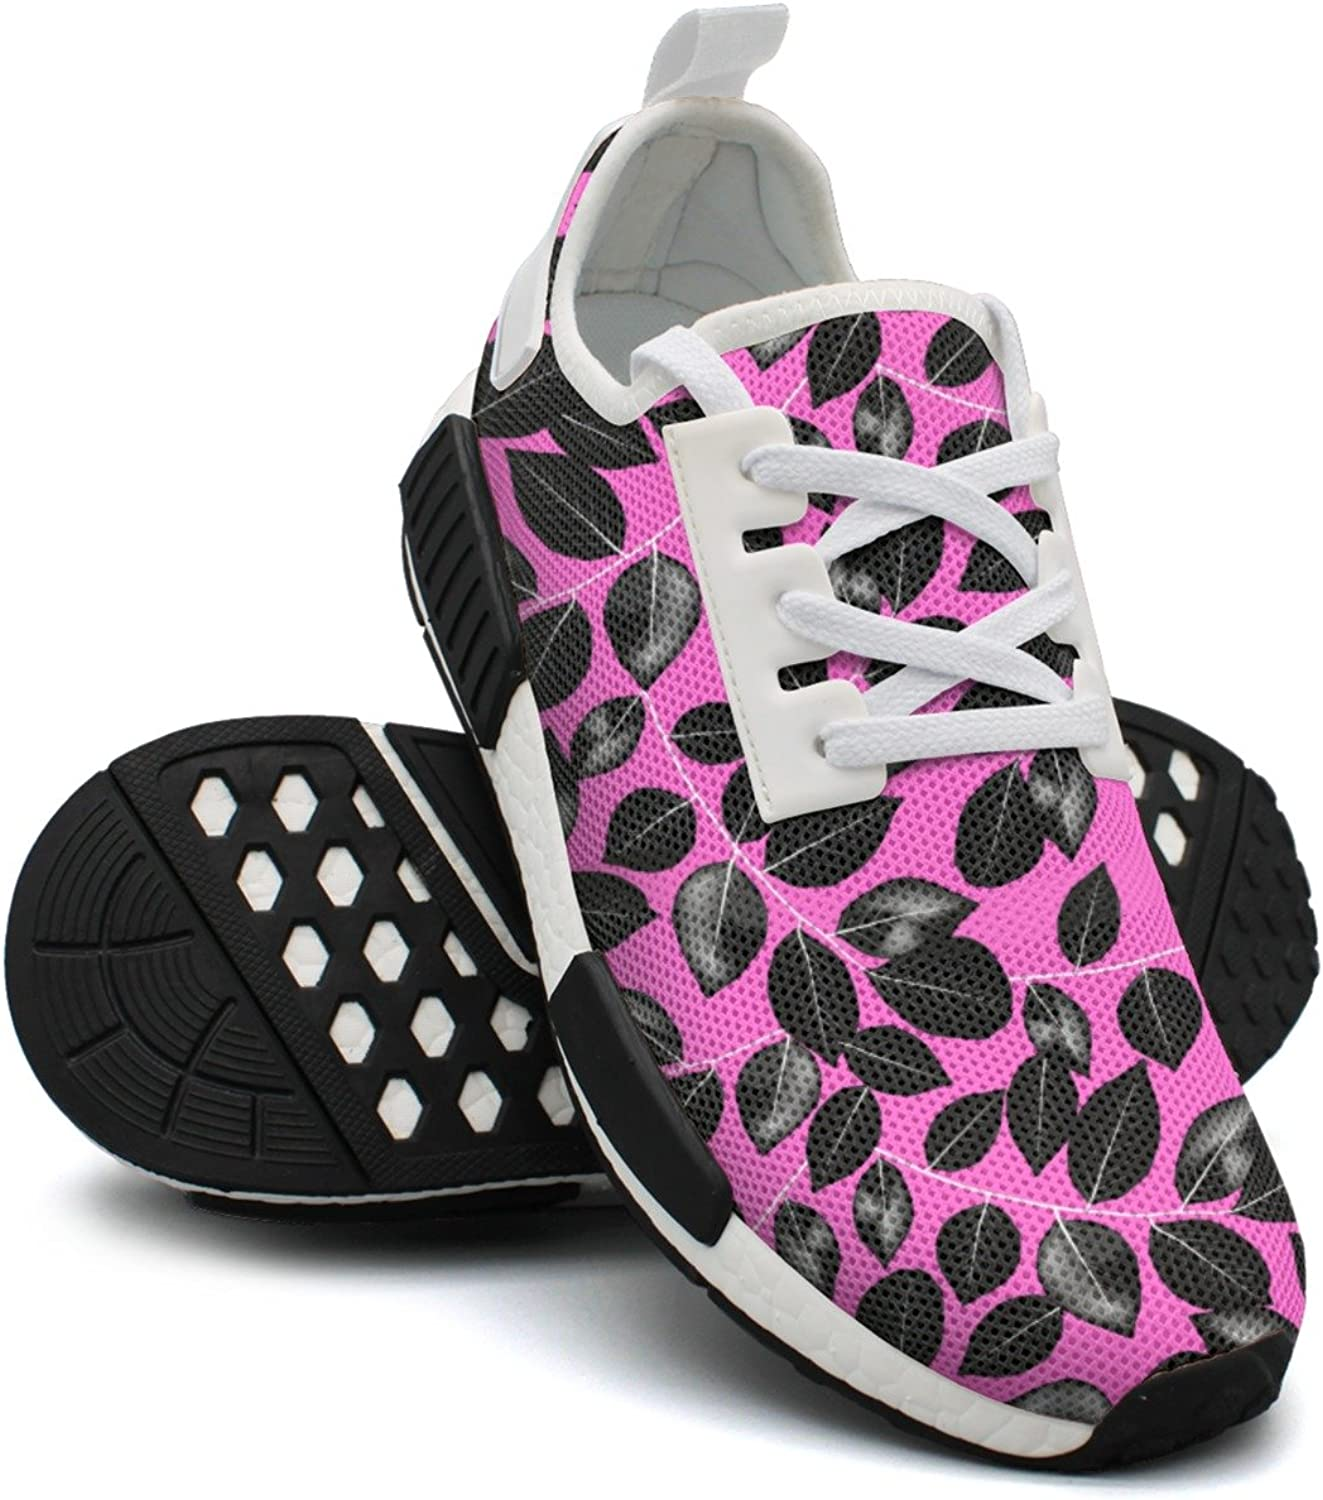 Tropical Black Leaves Women's Novelty Lightweight Tennis Sneakers Gym Outdoor Sports shoes